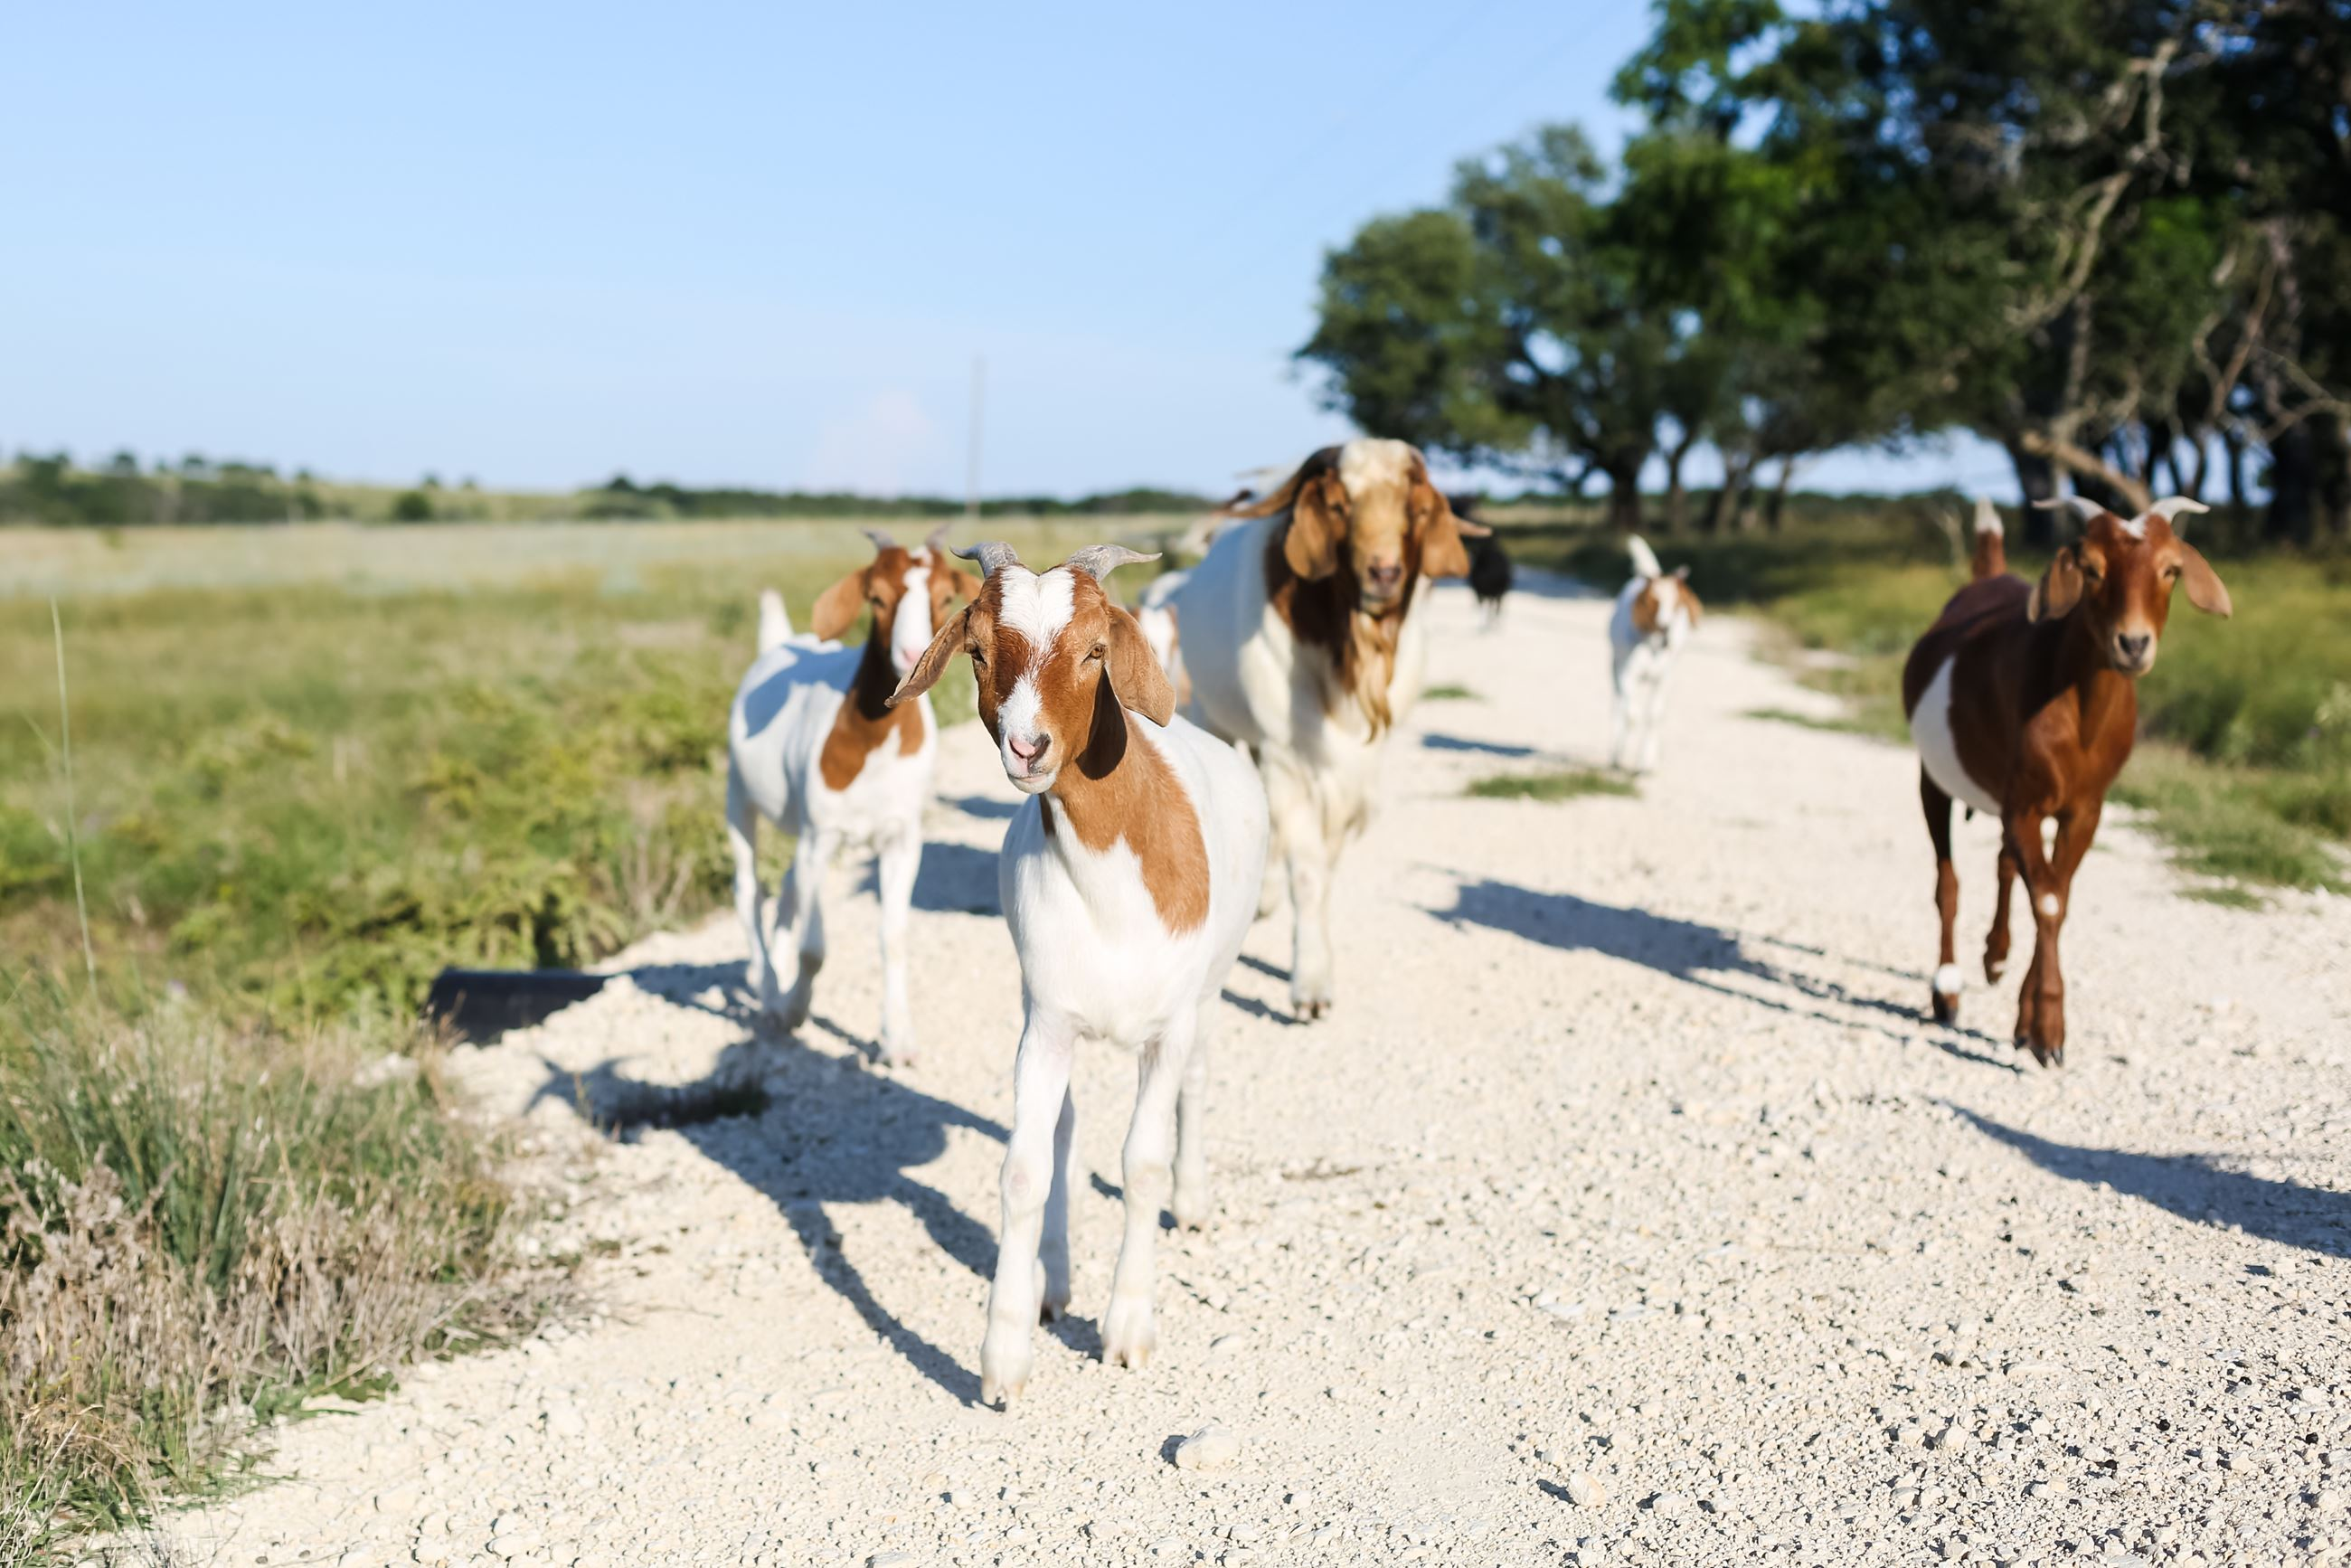 Goats on a gravel road